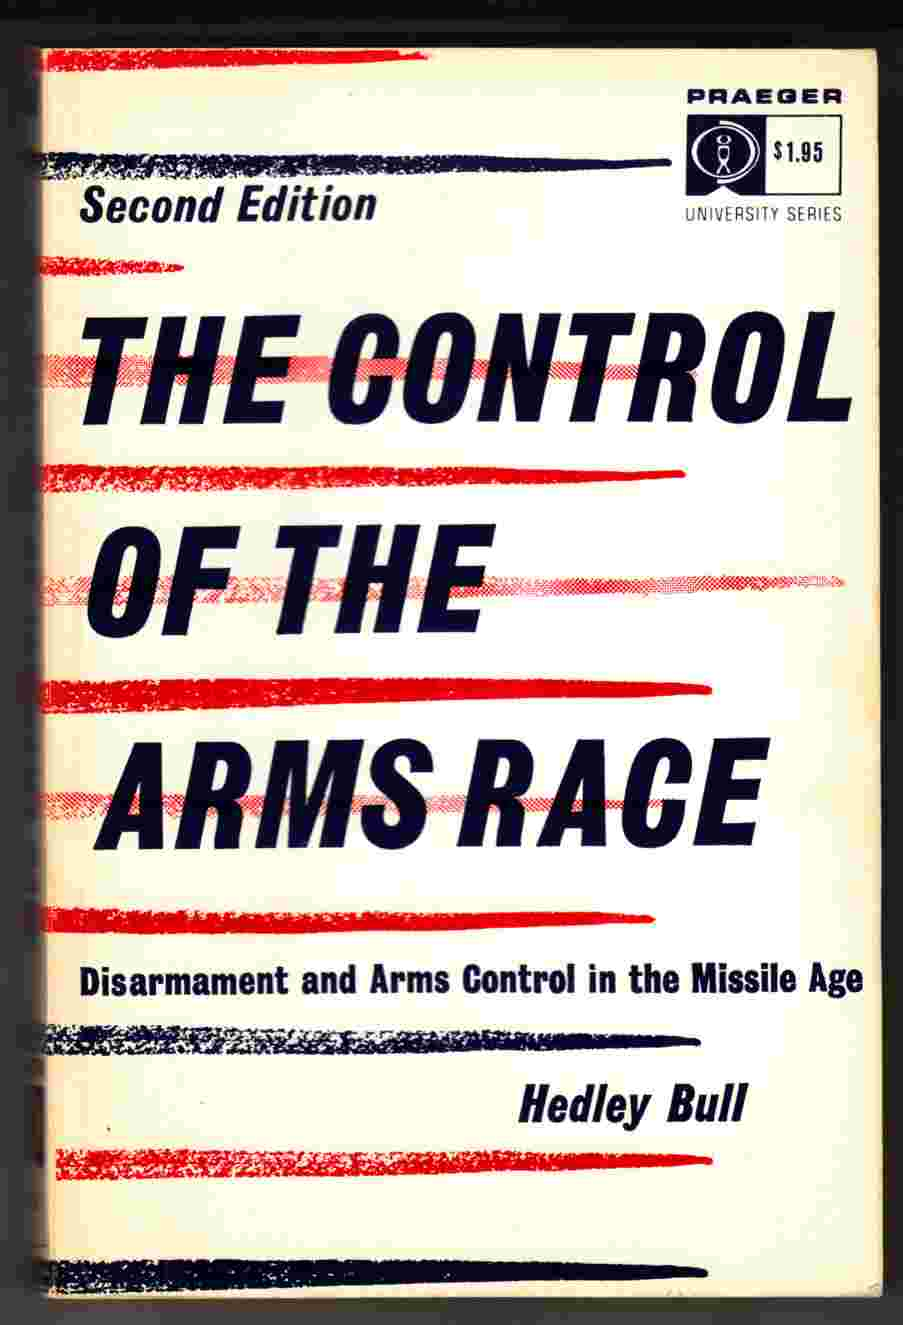 Image for The Control of the Arms Race Disarmamanet and Arms Control in the Missile Age Second Edition